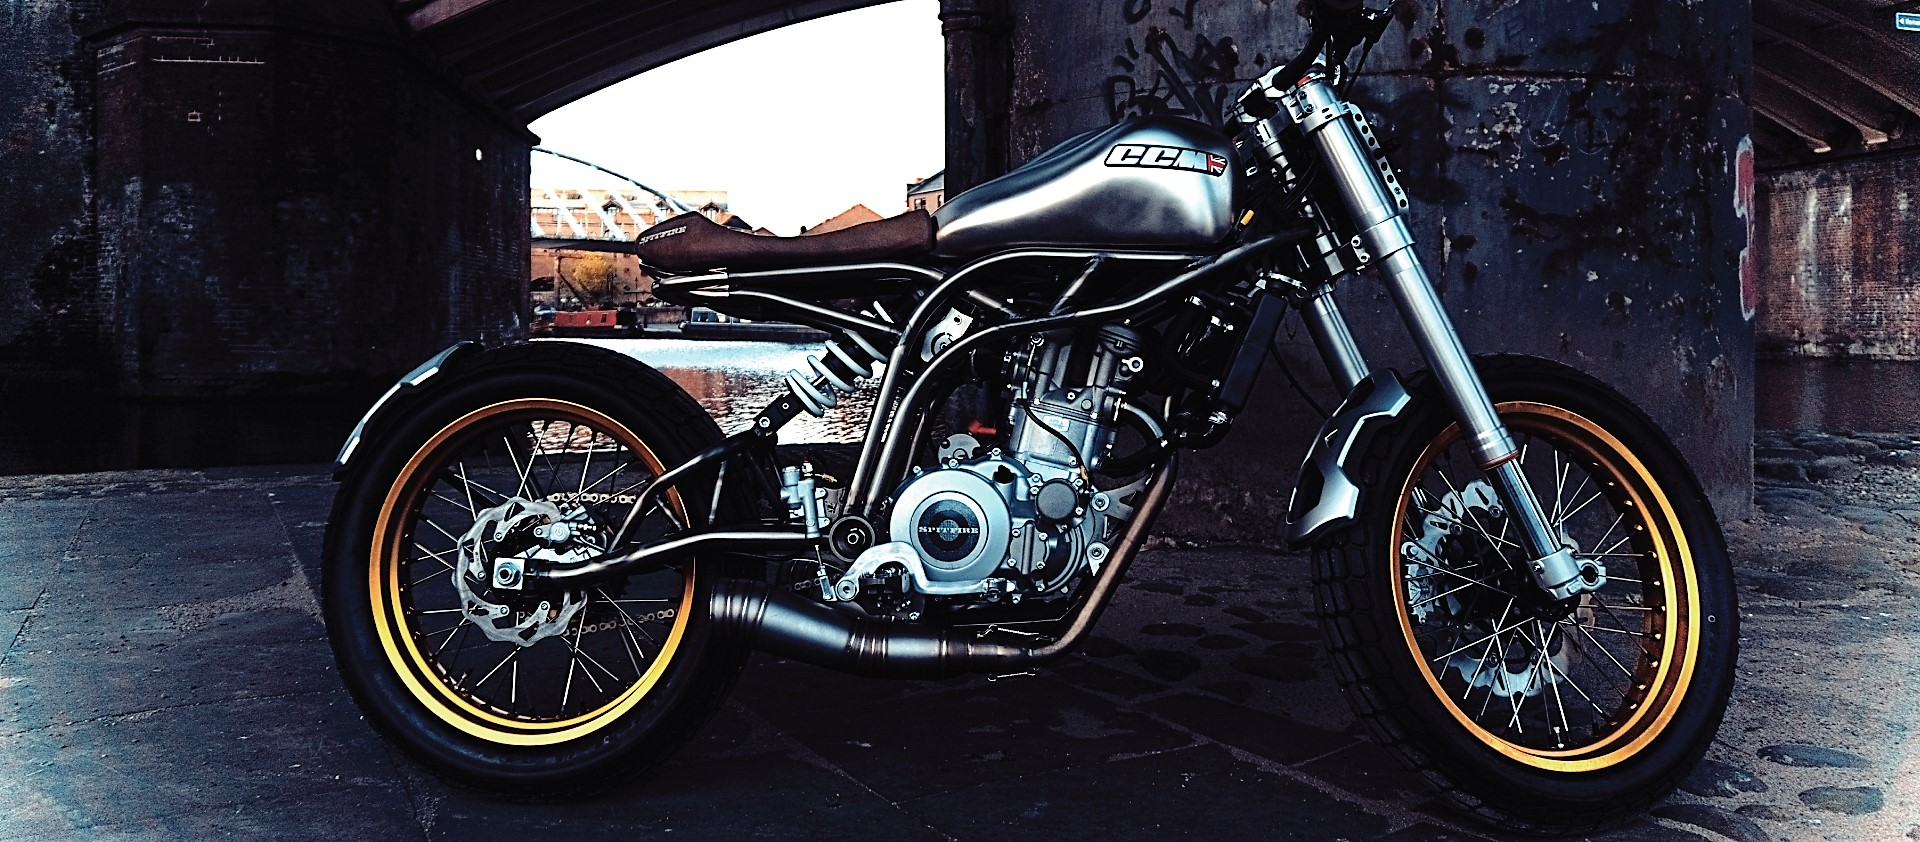 CCM Spitfire Bobber To Be Unveiled Next Week | Top Speed